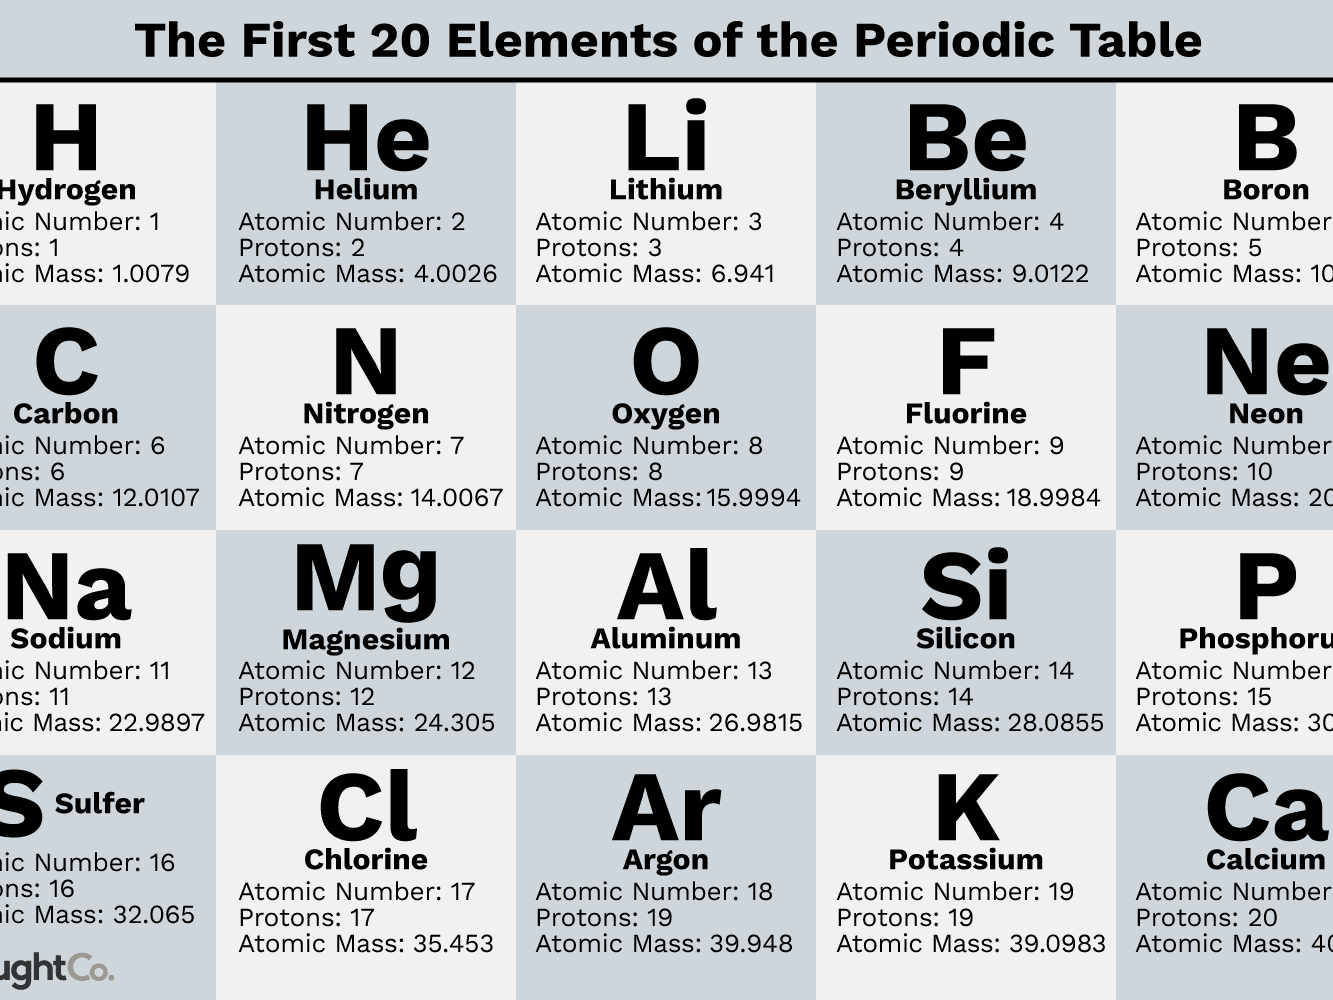 First 20 Elements Of The Periodic Table With Atomic Number